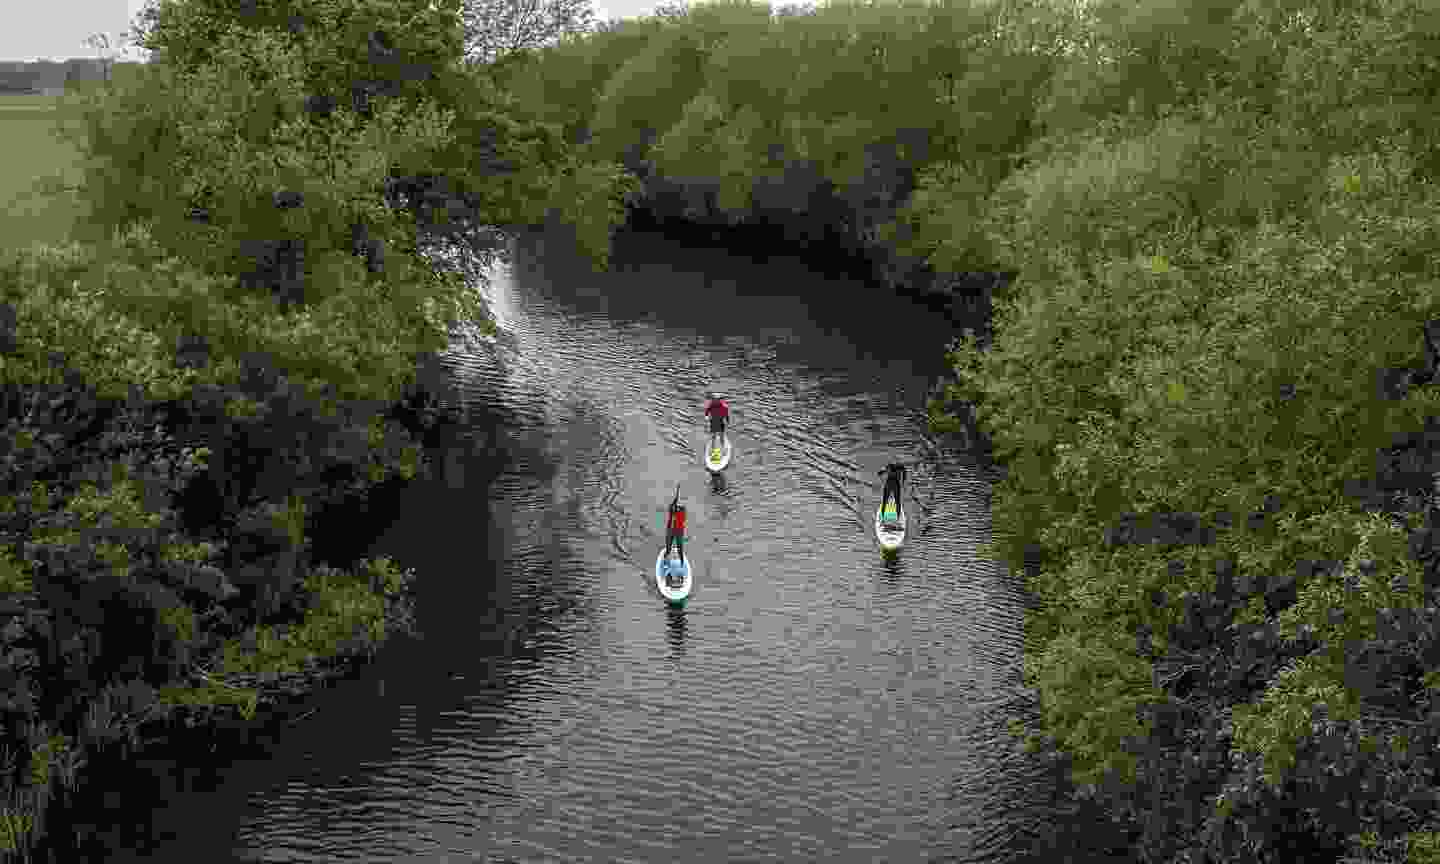 Paddling along the River Great Ouse (GlobalShots)